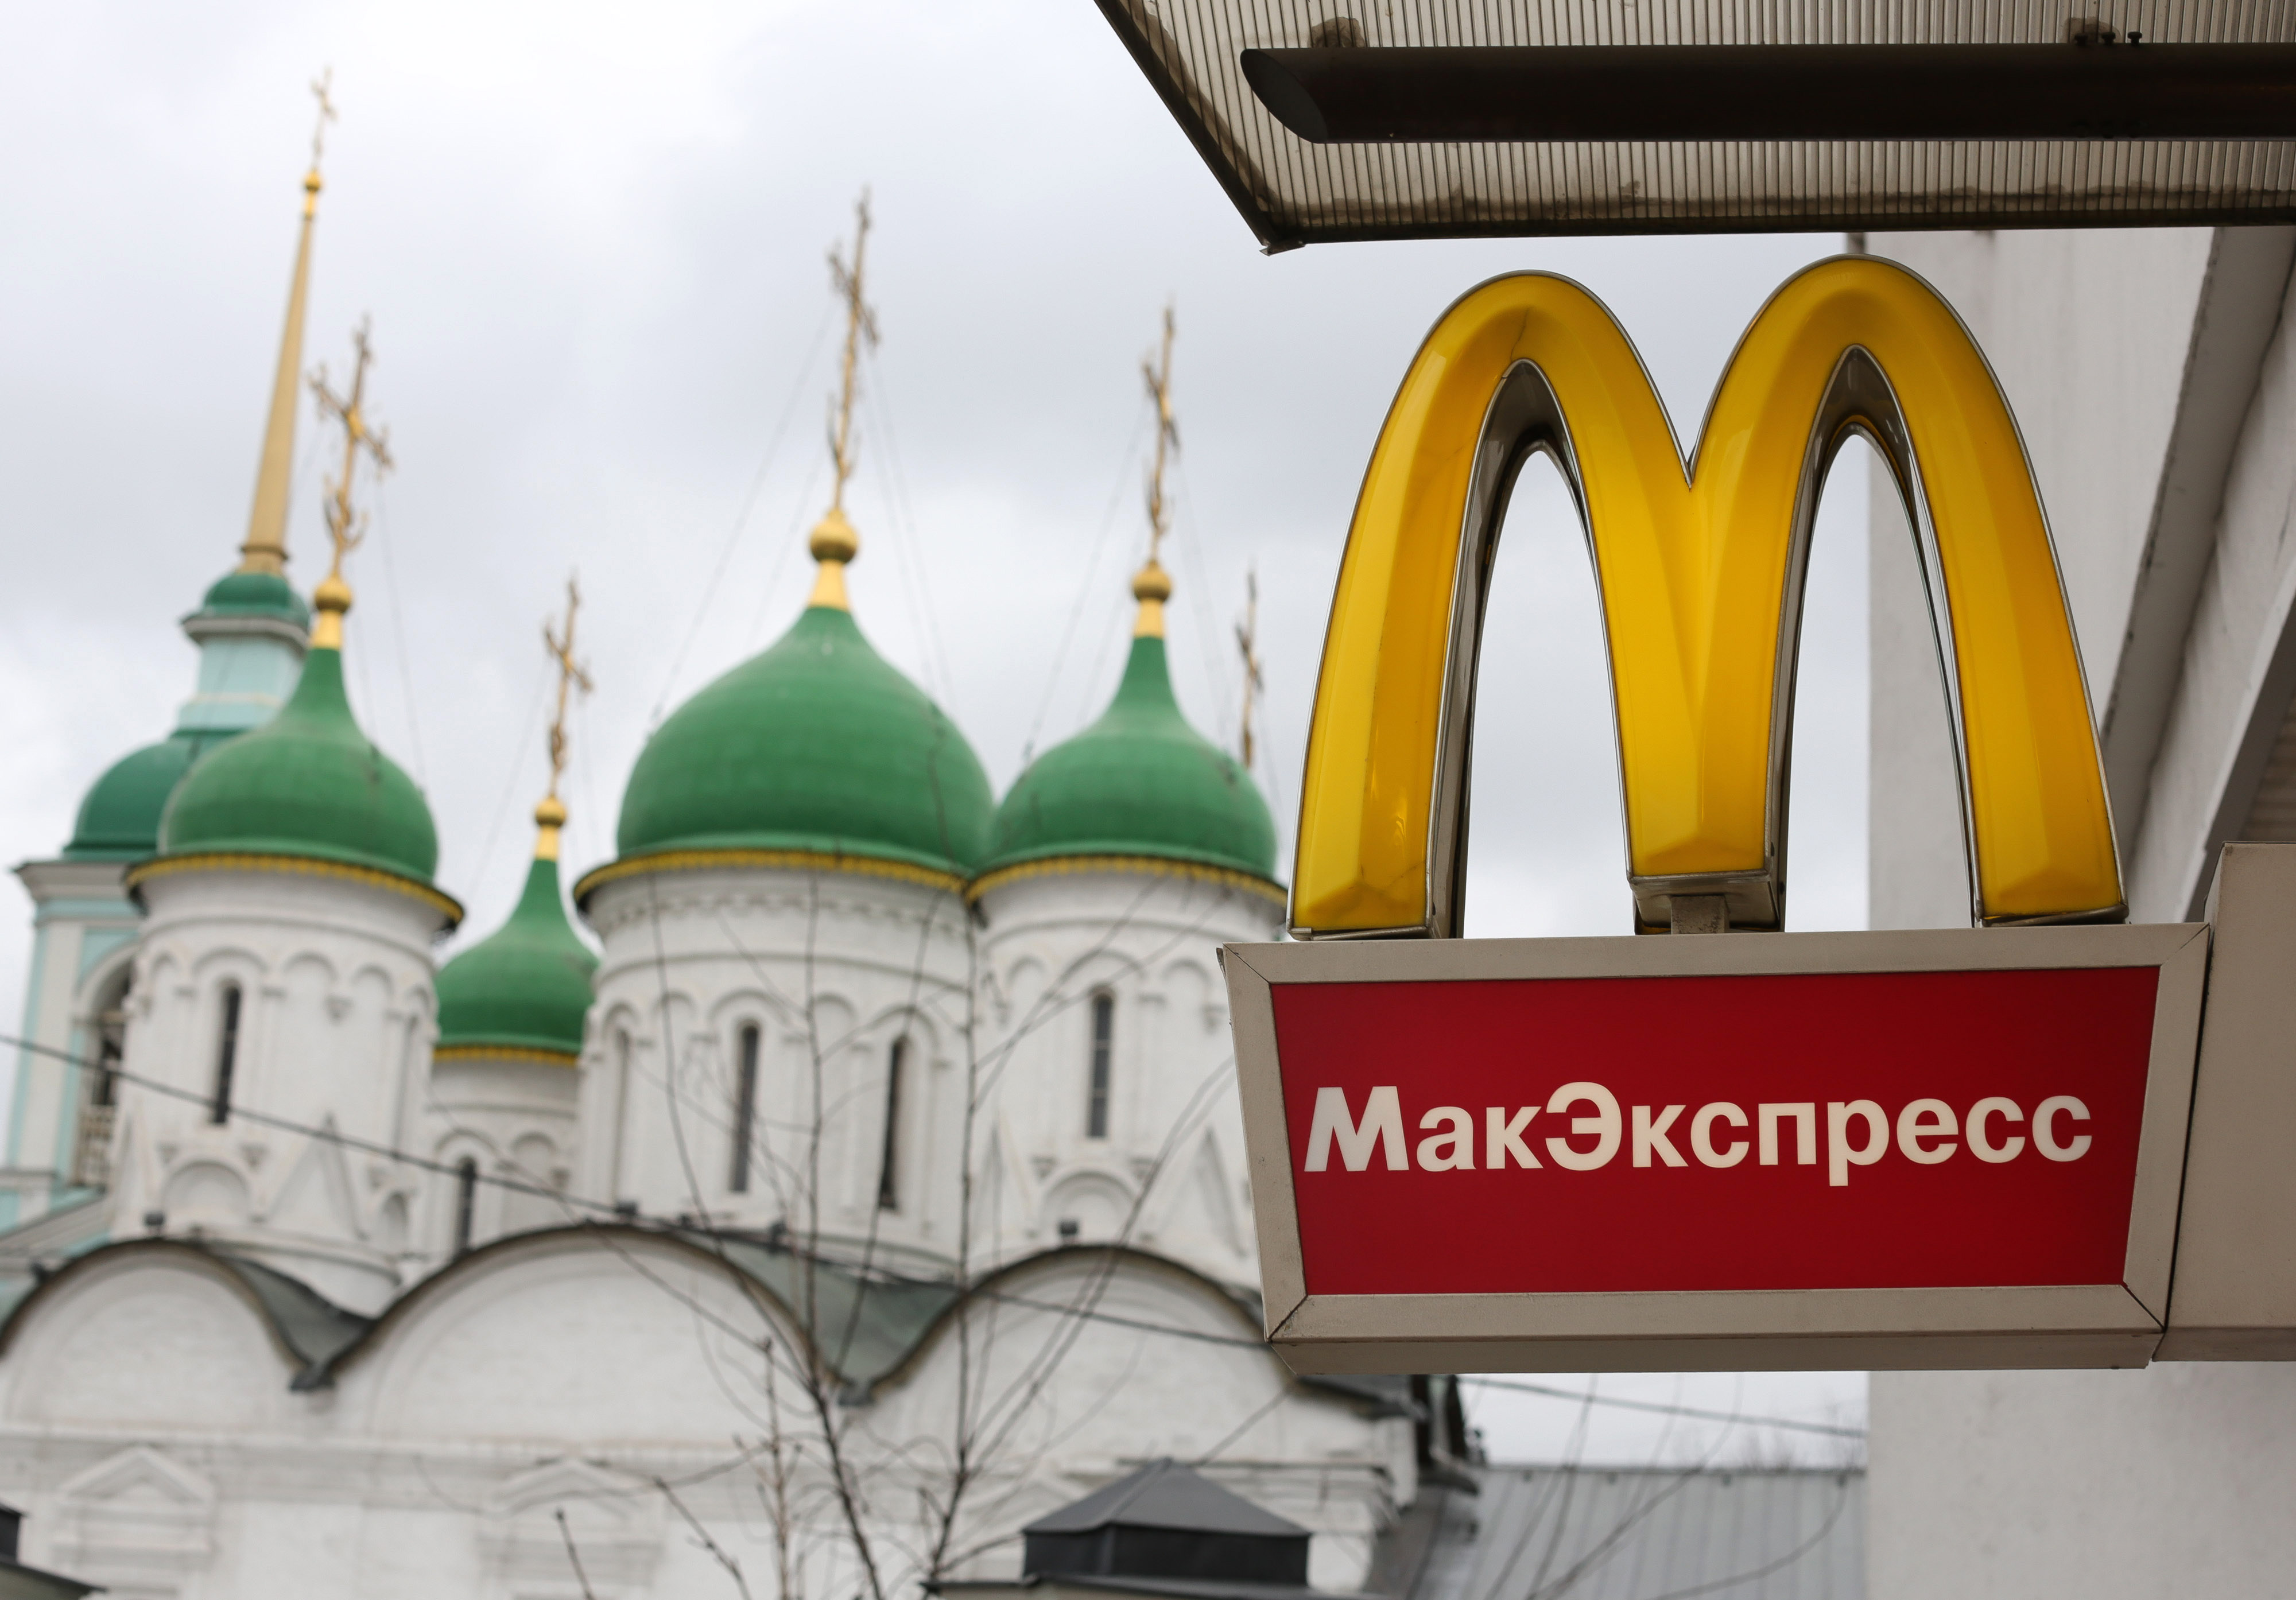 A logo hangs on display outside a McDonald's food restaurant in Moscow, Russia, on Sunday, April 7, 2013.